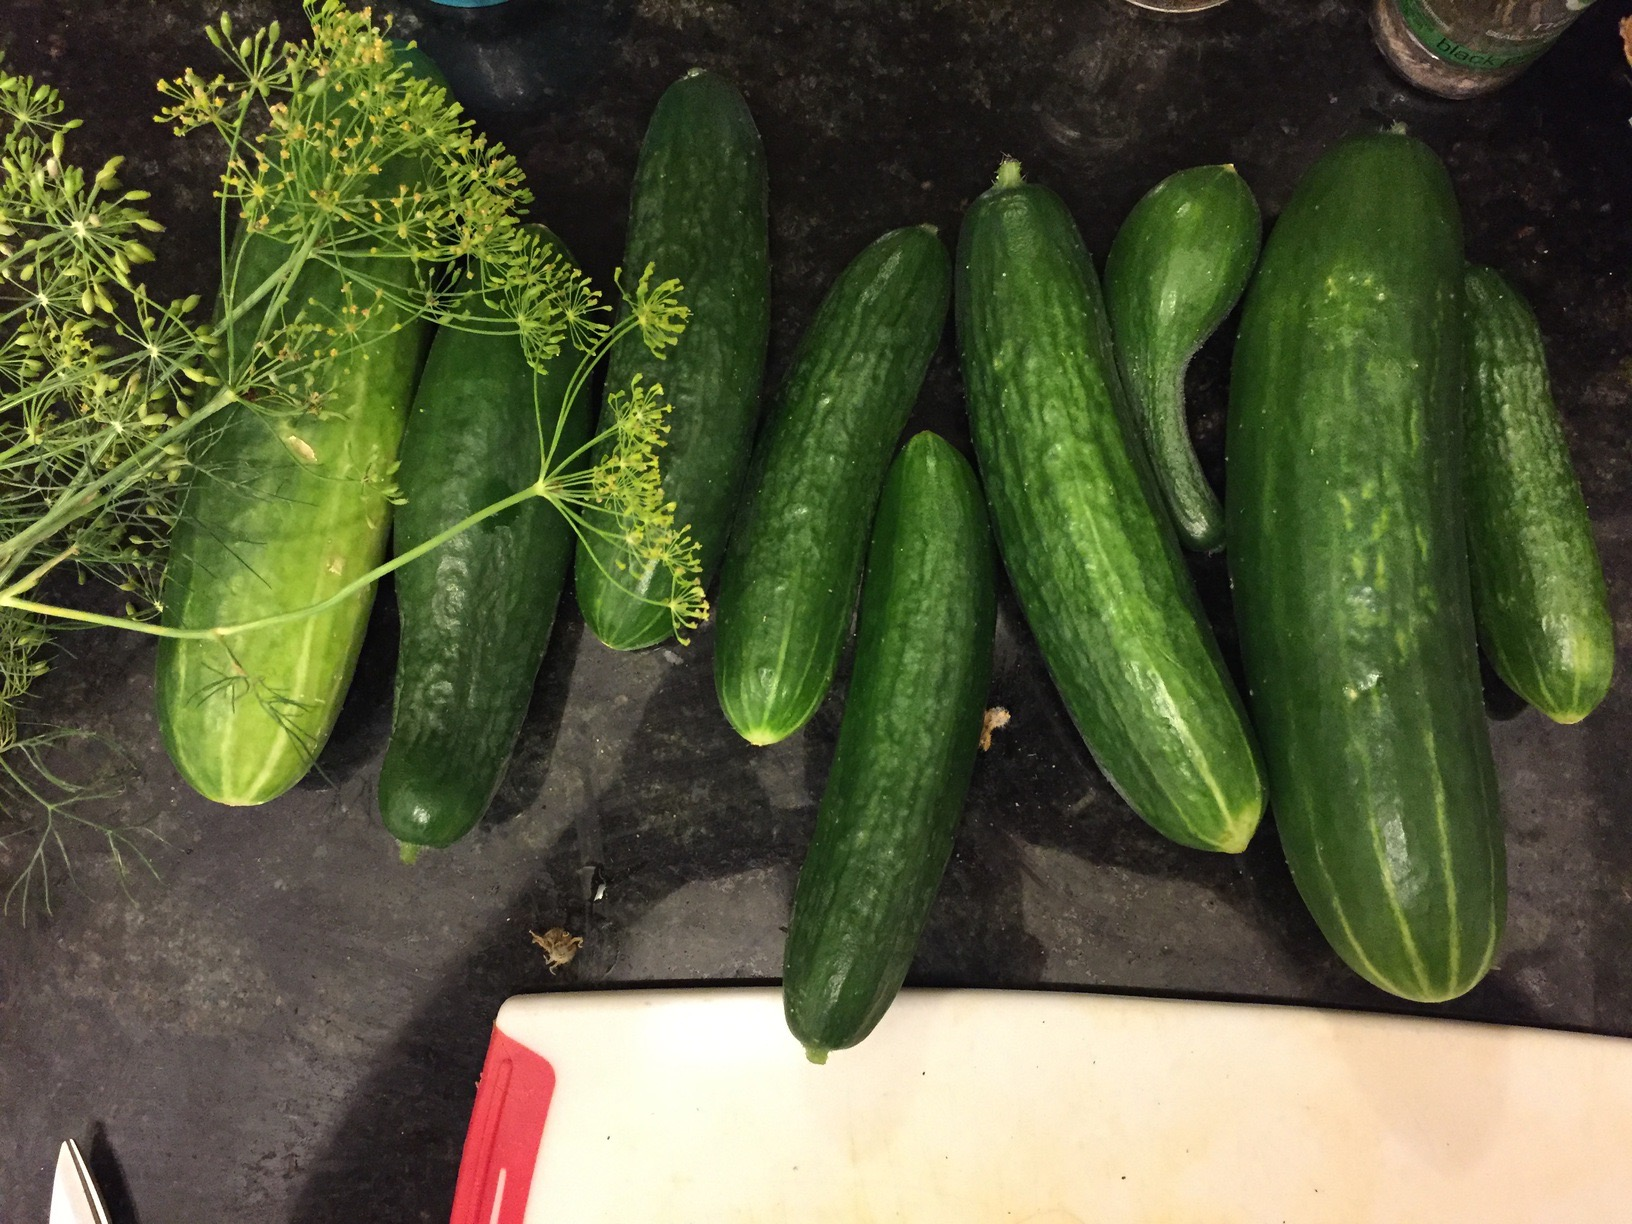 Cucumbers and dill flowers/seeds from the garden, ready for pickling